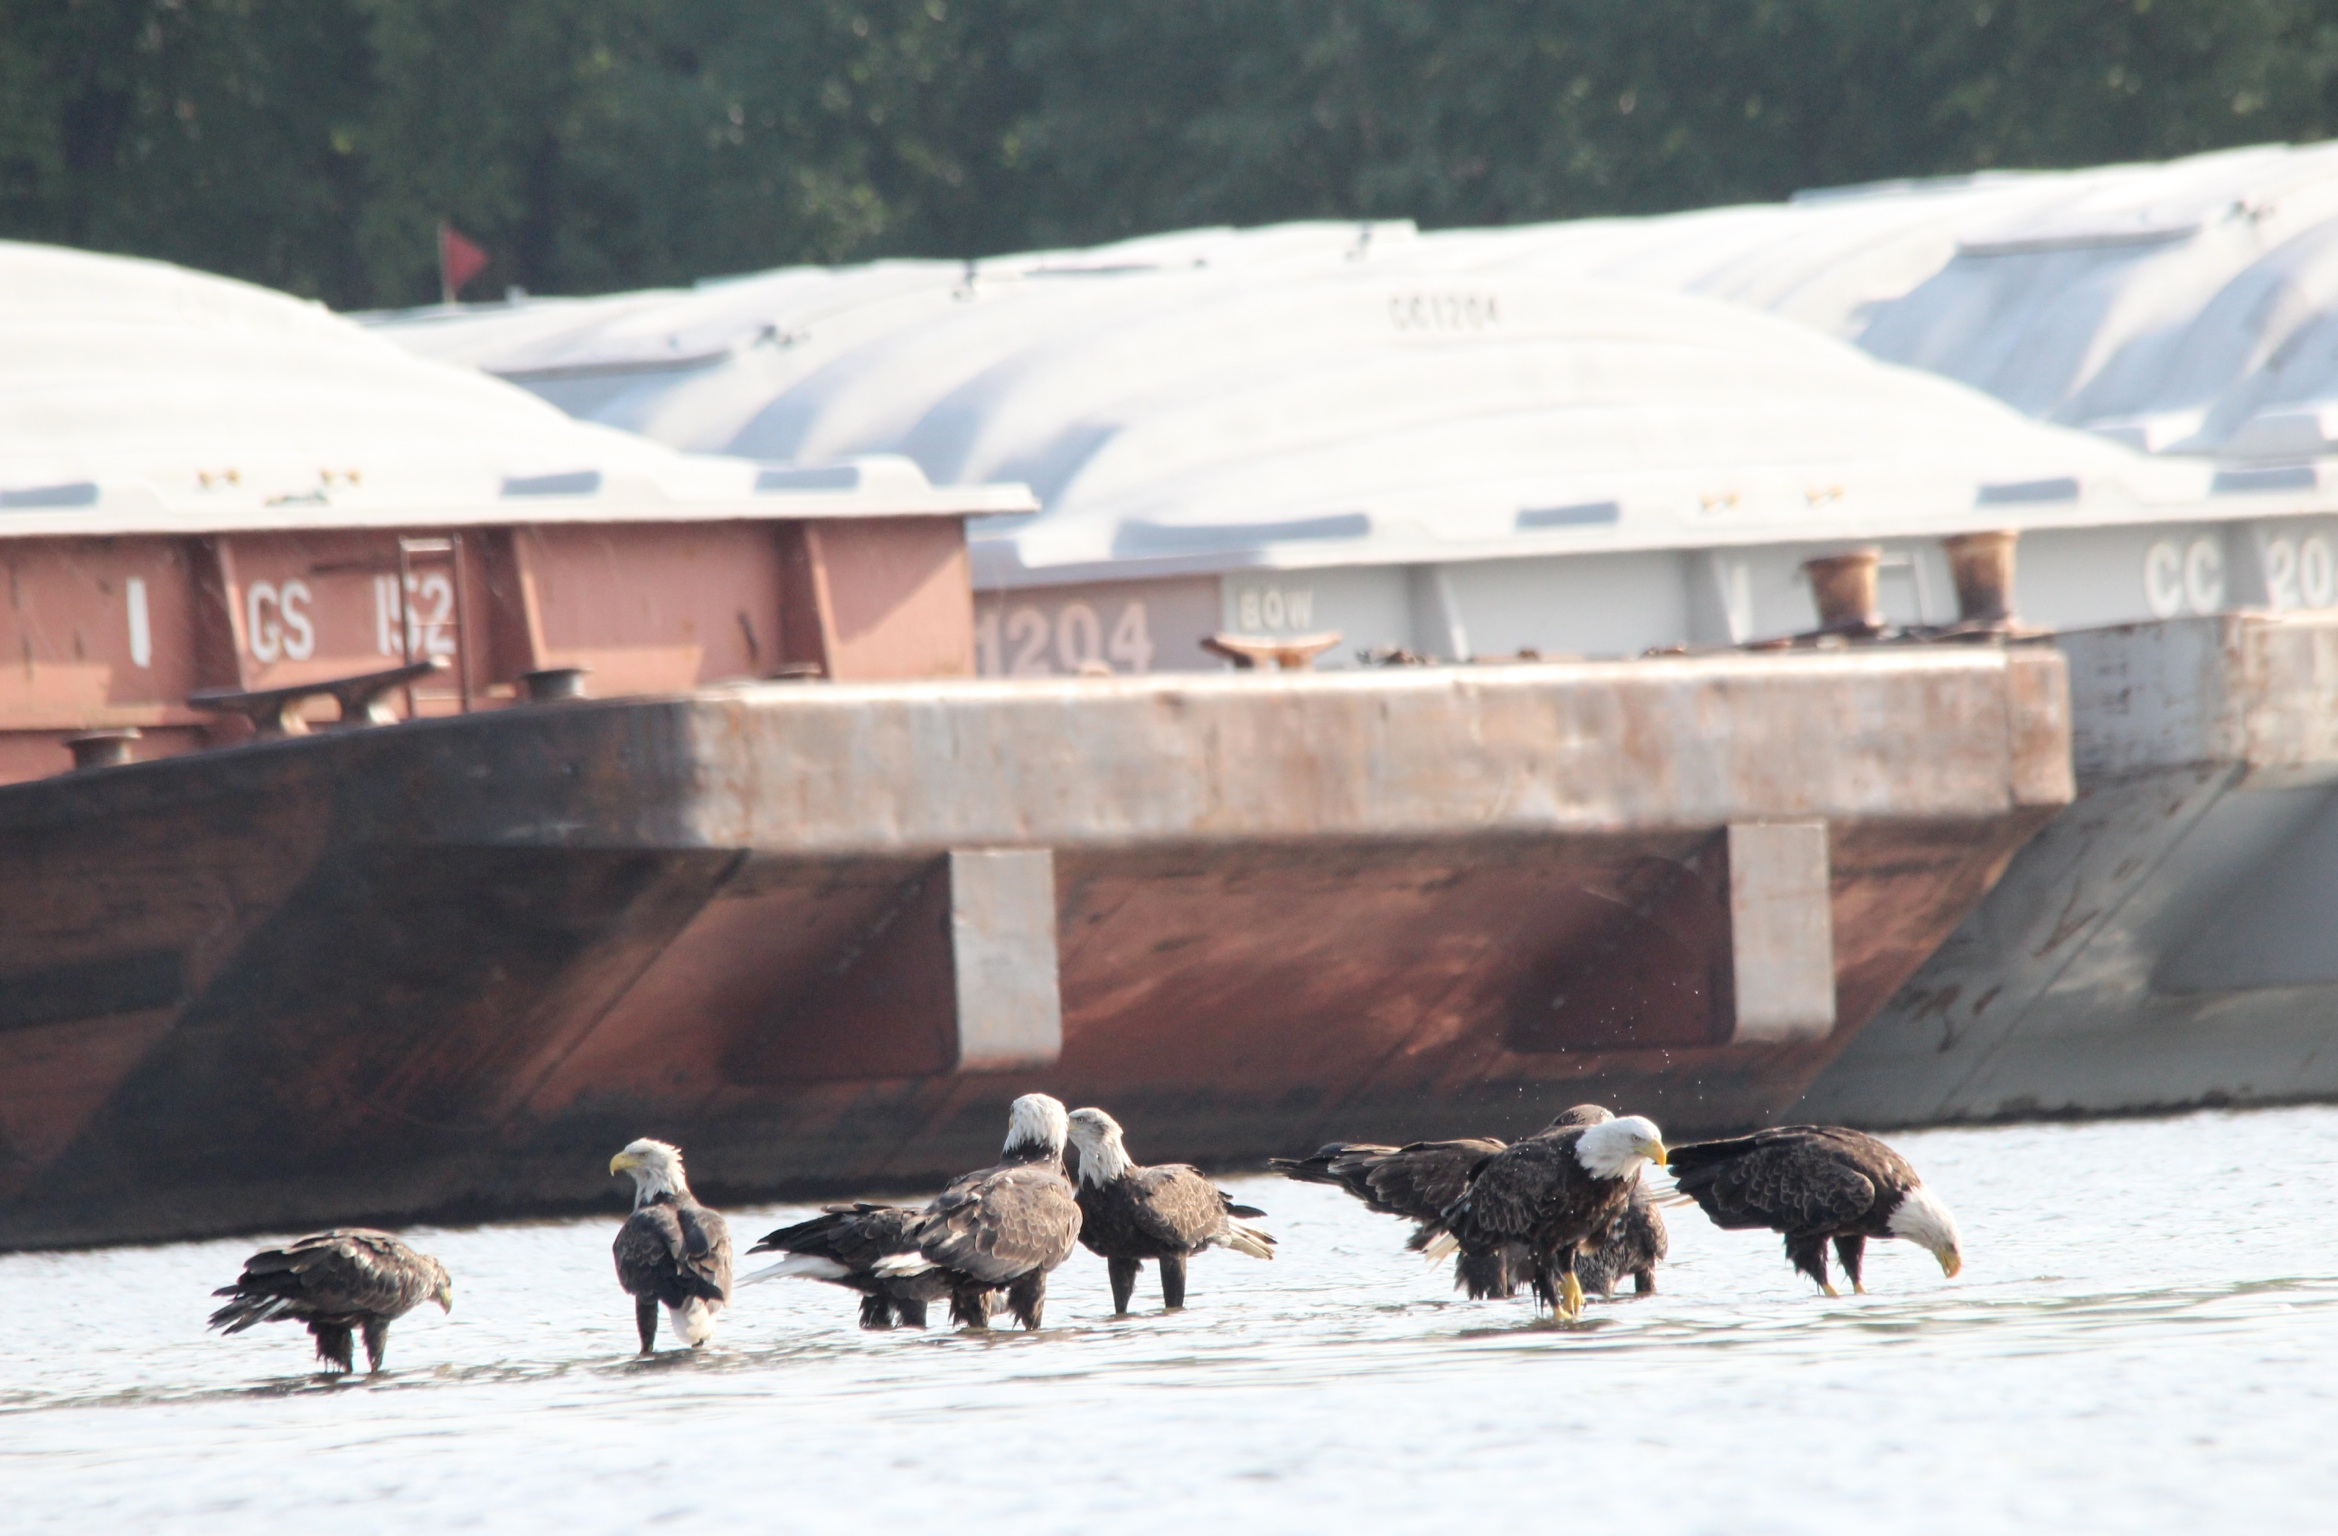 Pig's Eye. Eight bald eagles stand in shallow water in an industrial area. Photographer Monica Bryand.